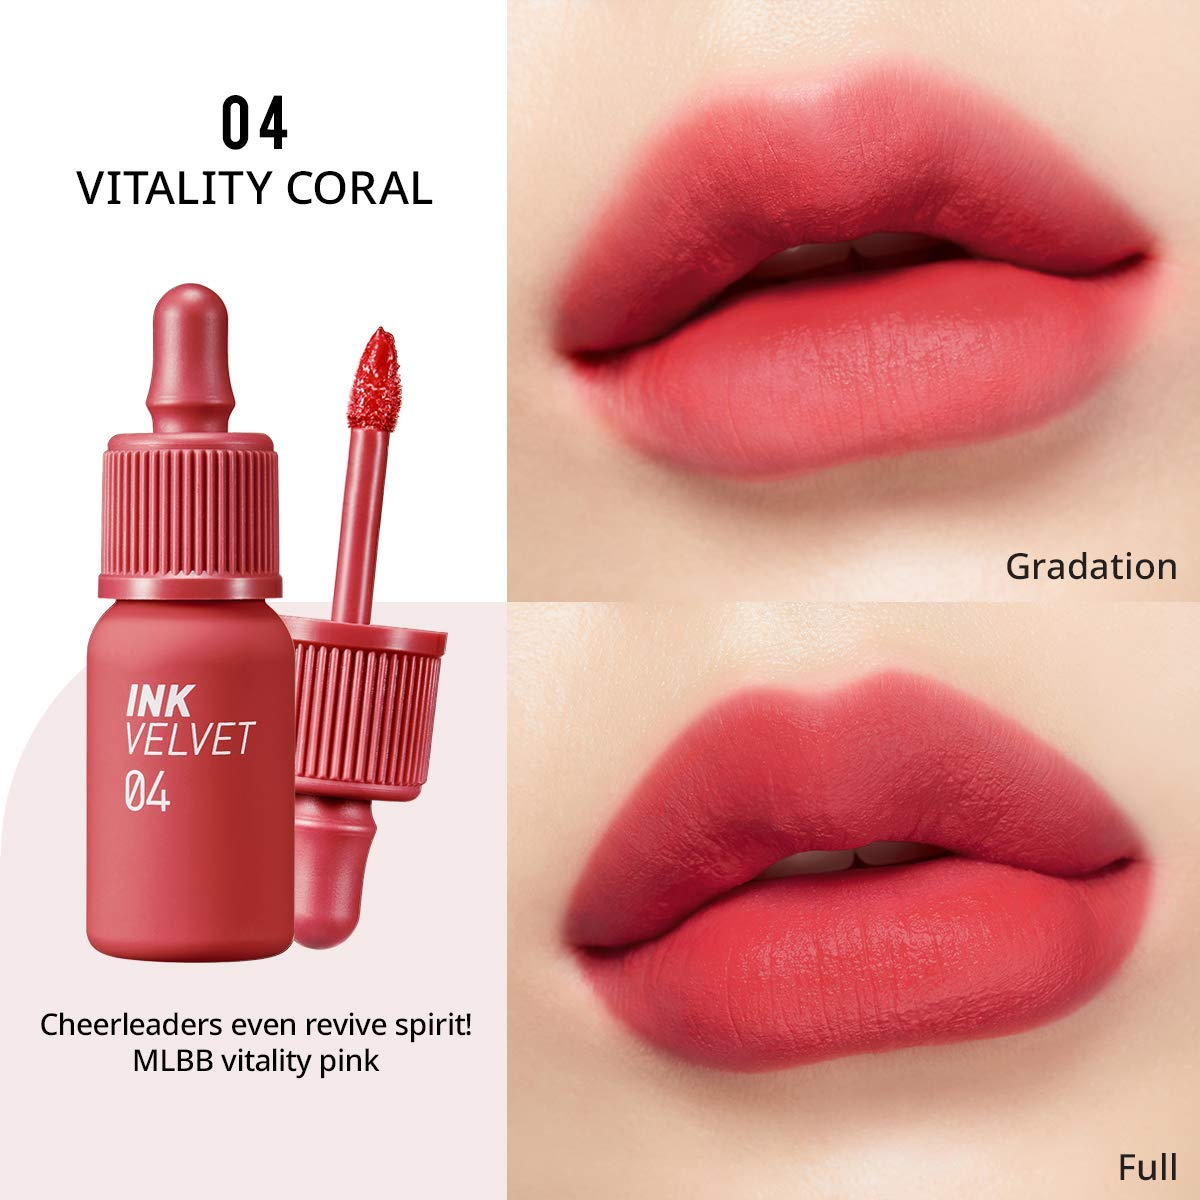 Ink The Velvet Lip Tint #04 Vitality Coral - Plump Shop